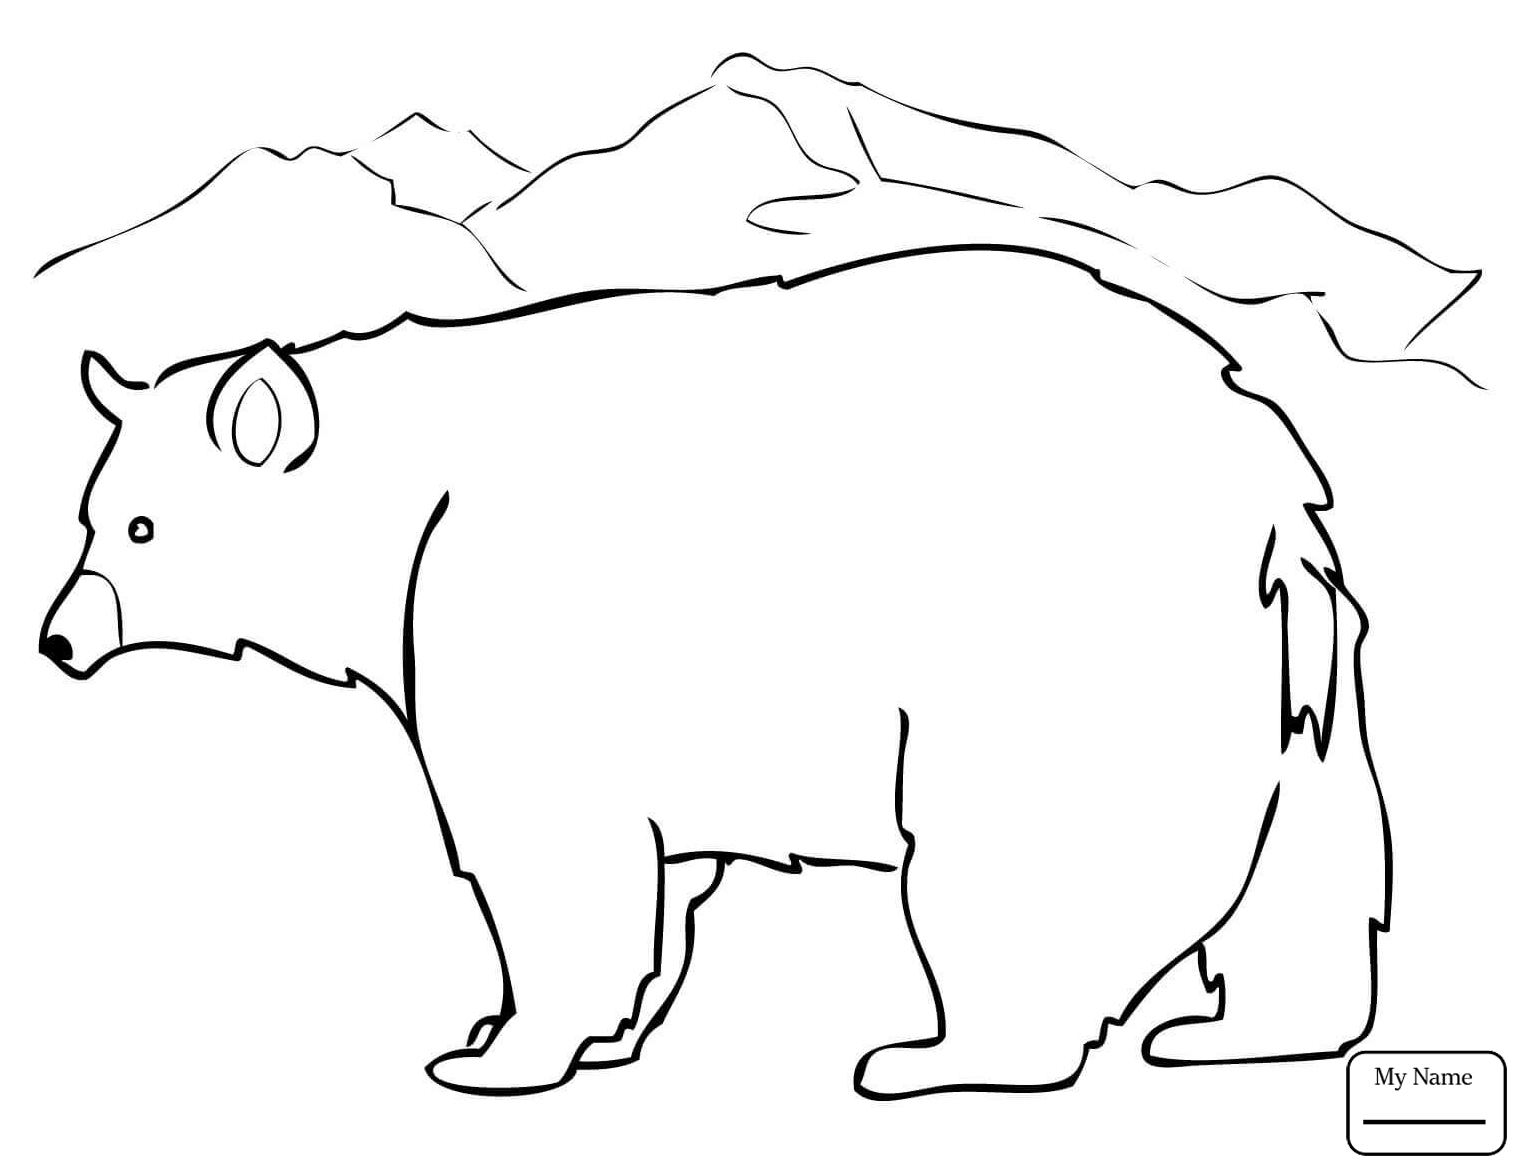 Wolf Cub Coloring Pages At Getcolorings